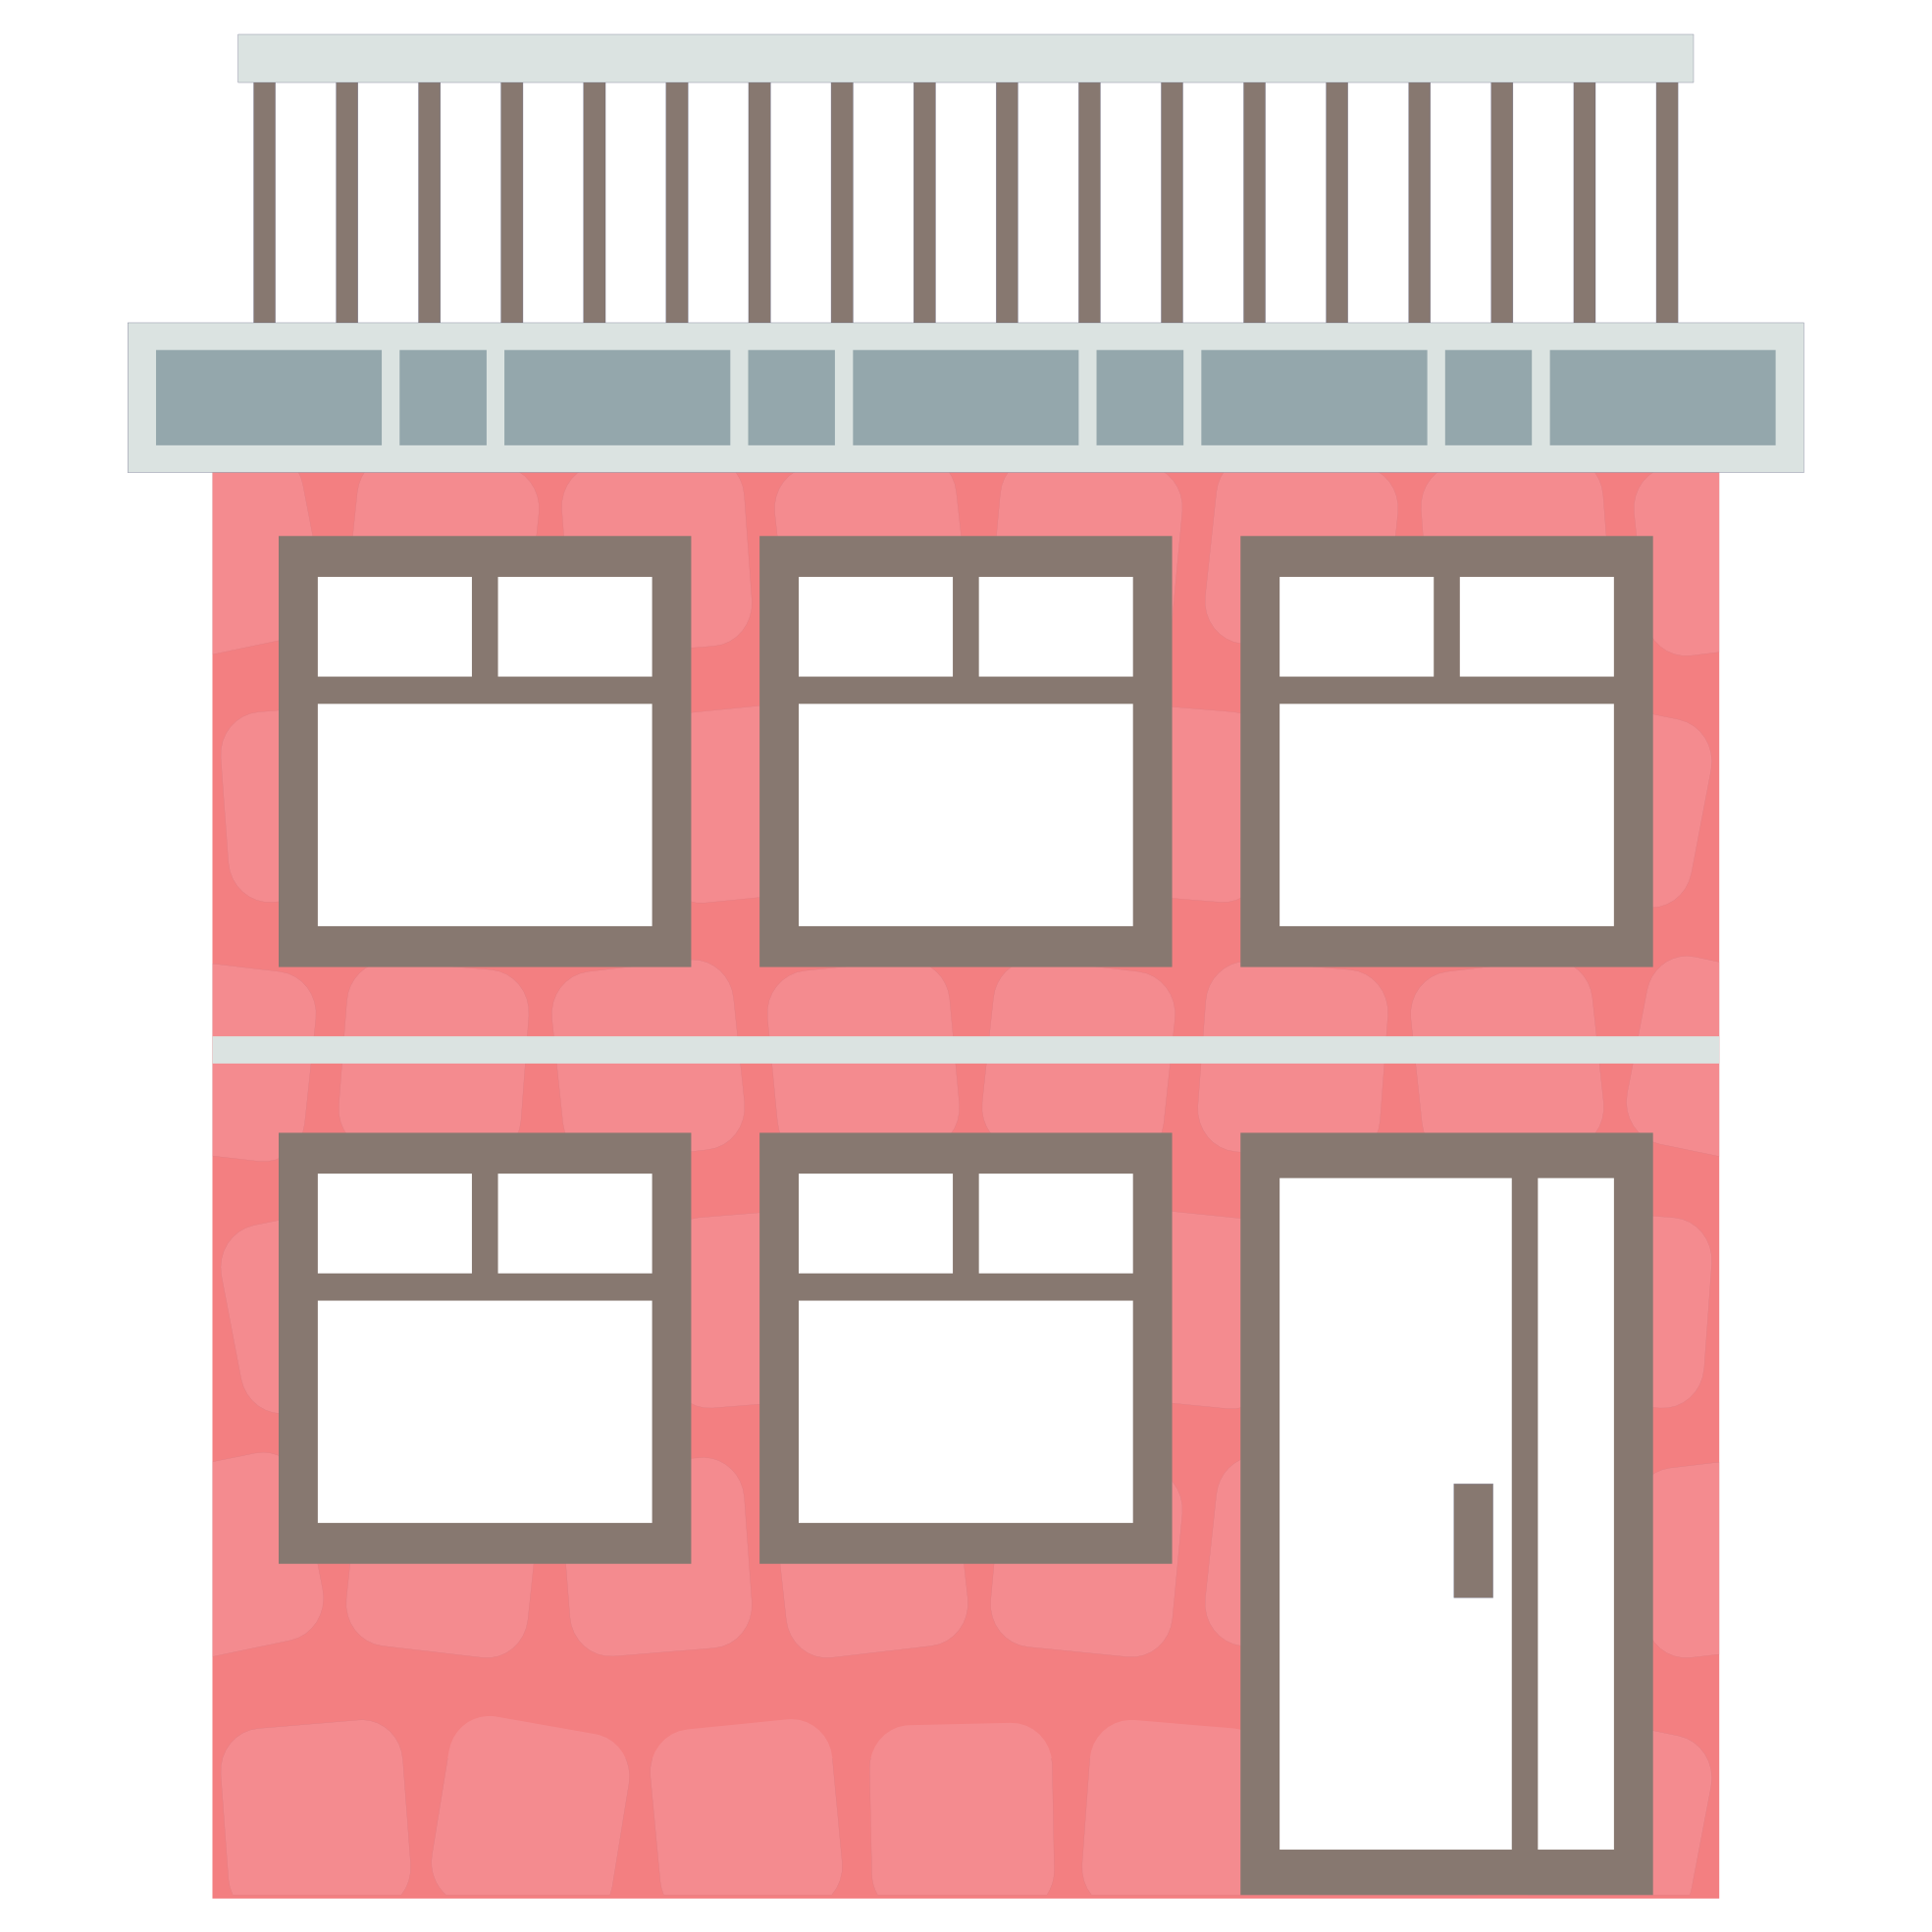 Shop Building Png PNG Image